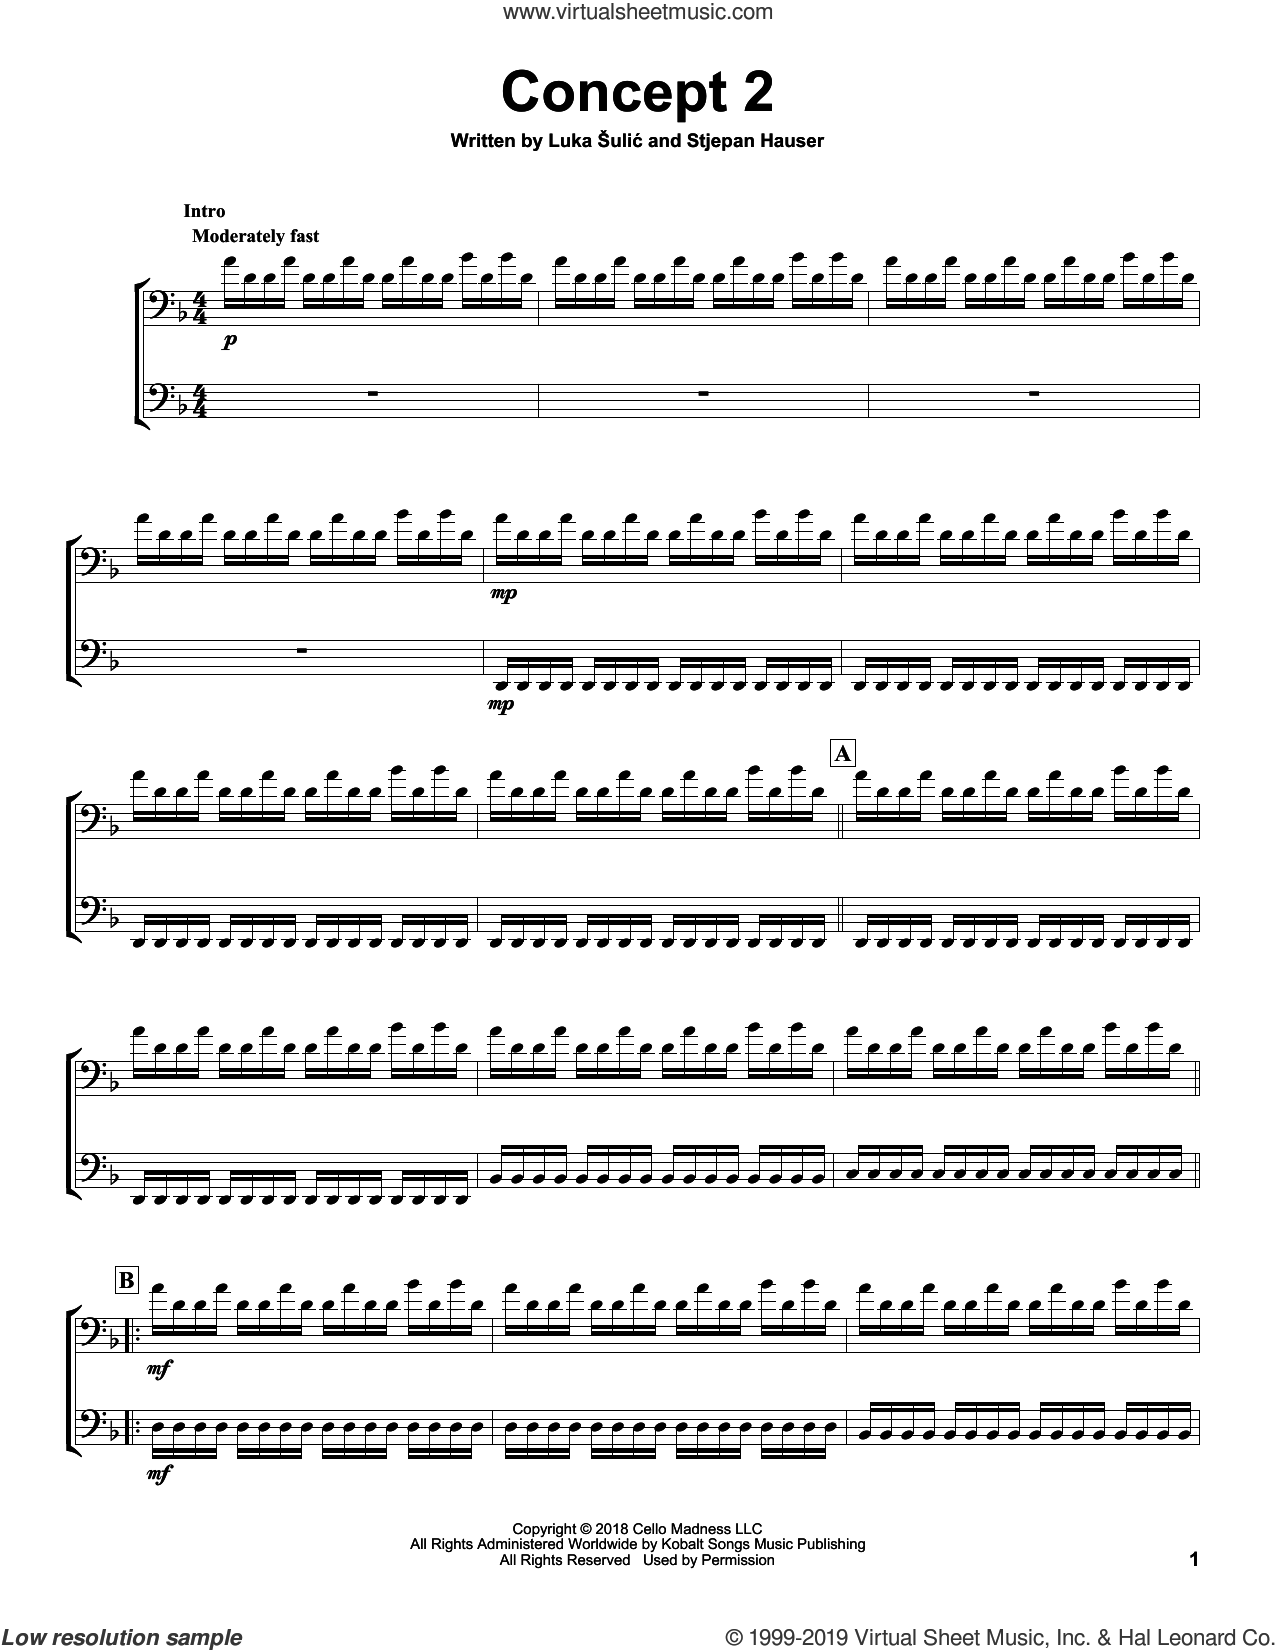 Concept2 sheet music for two cellos (duet, duets) by 2Cellos, Luka Sulic and Stjepan Hauser, classical score, intermediate skill level